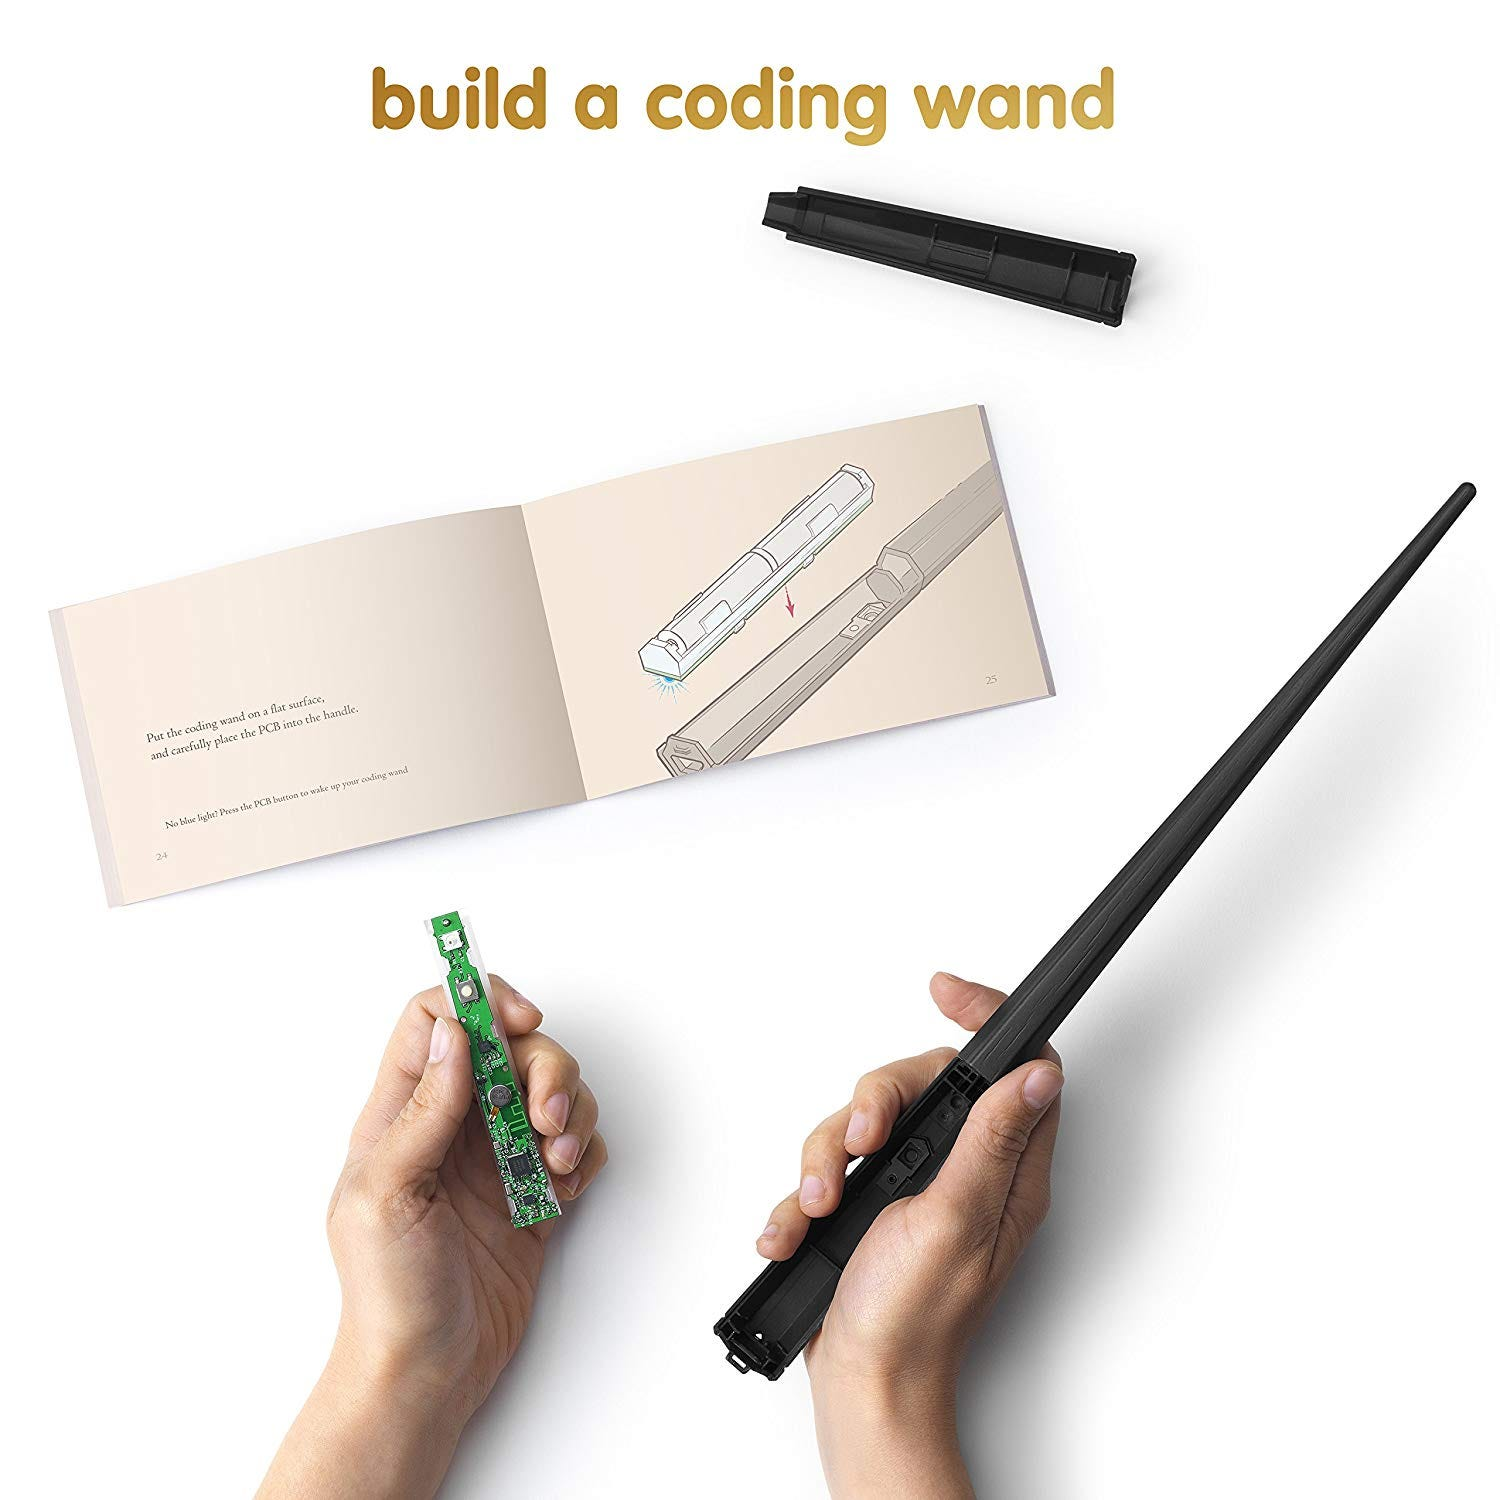 Kano Harry Potter Coding Kit